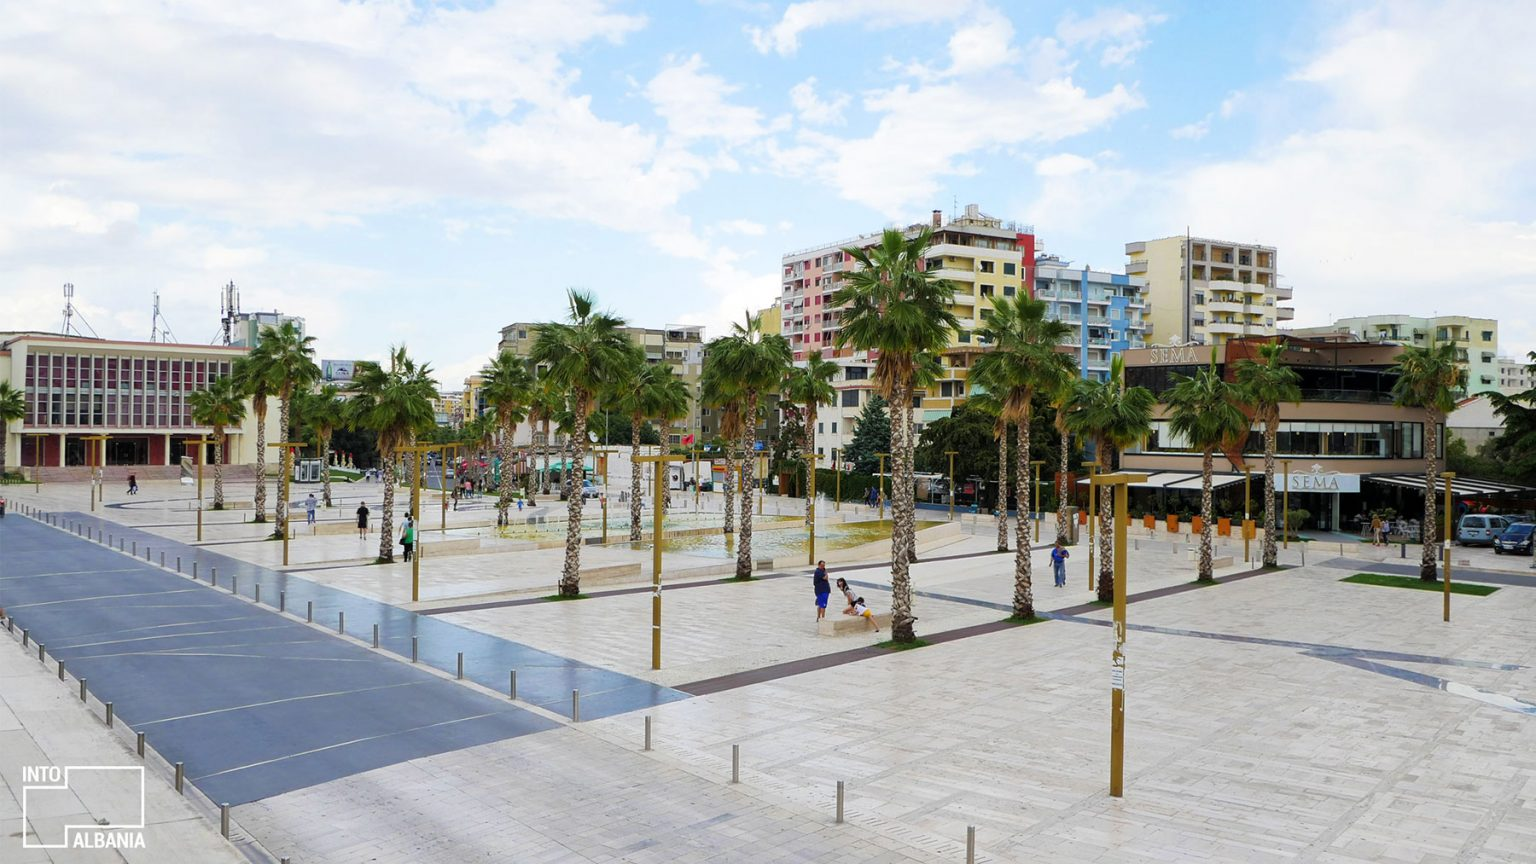 Illyria Square in Durrës, photo by IntoAlbania